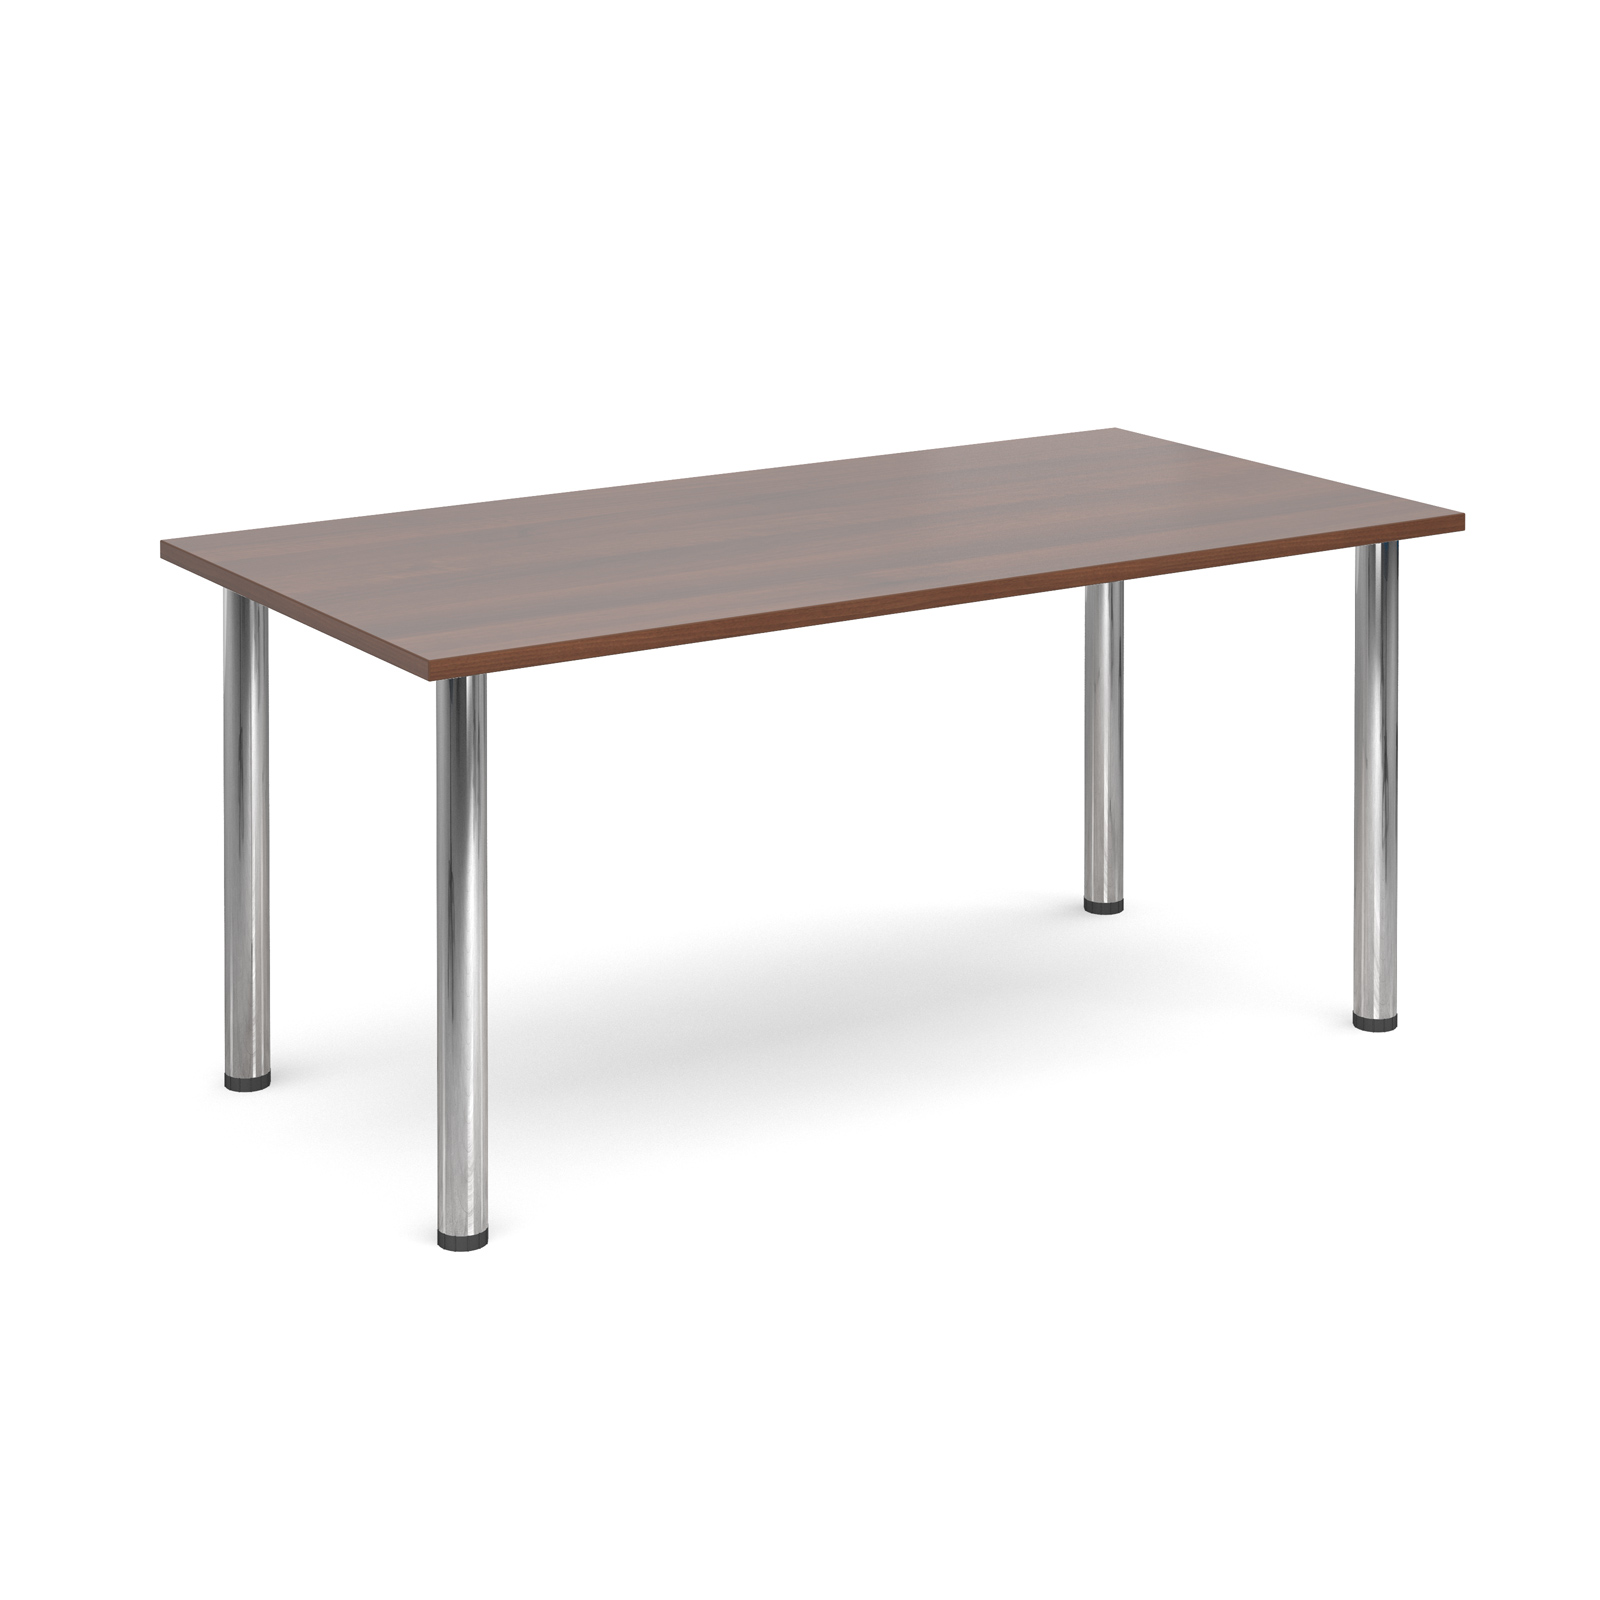 1600 Flexi table Chrome radial Legs-Walnut